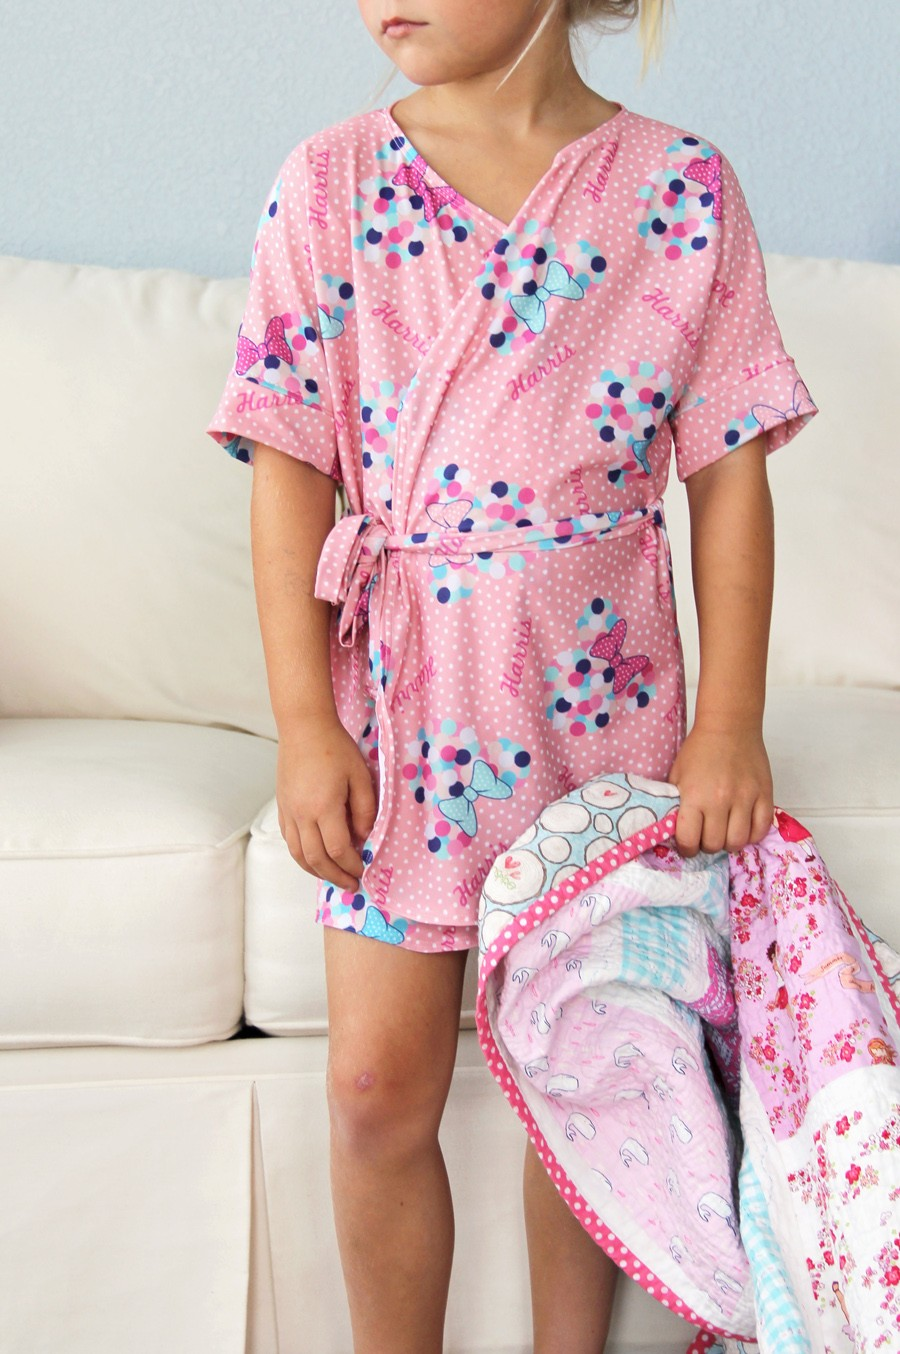 Kids Bathrobe The Sewing Rabbit